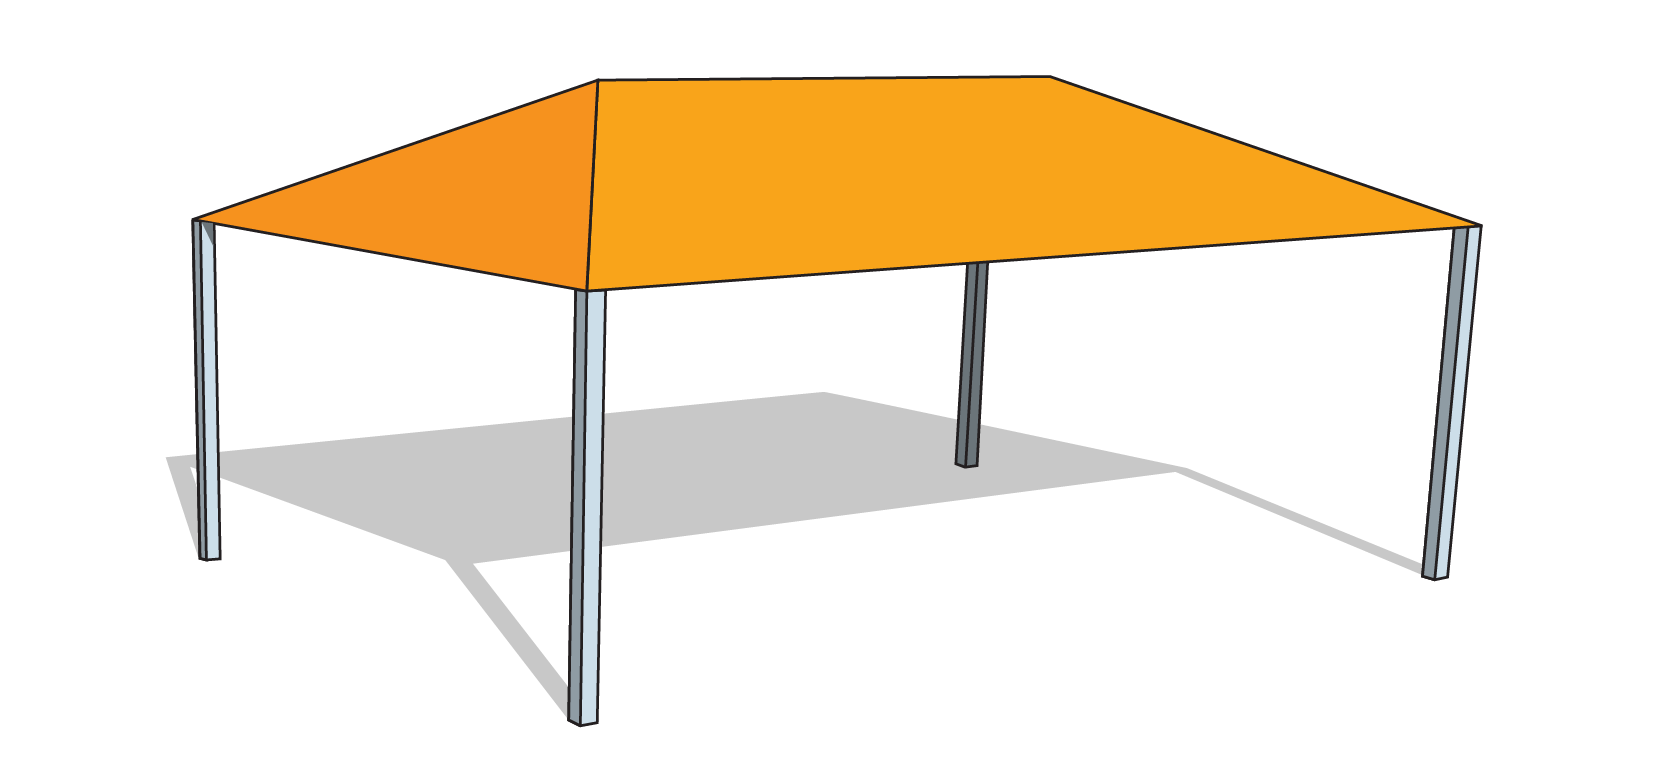 Hs 2030 Hip Shade Structure Financed Tenshon